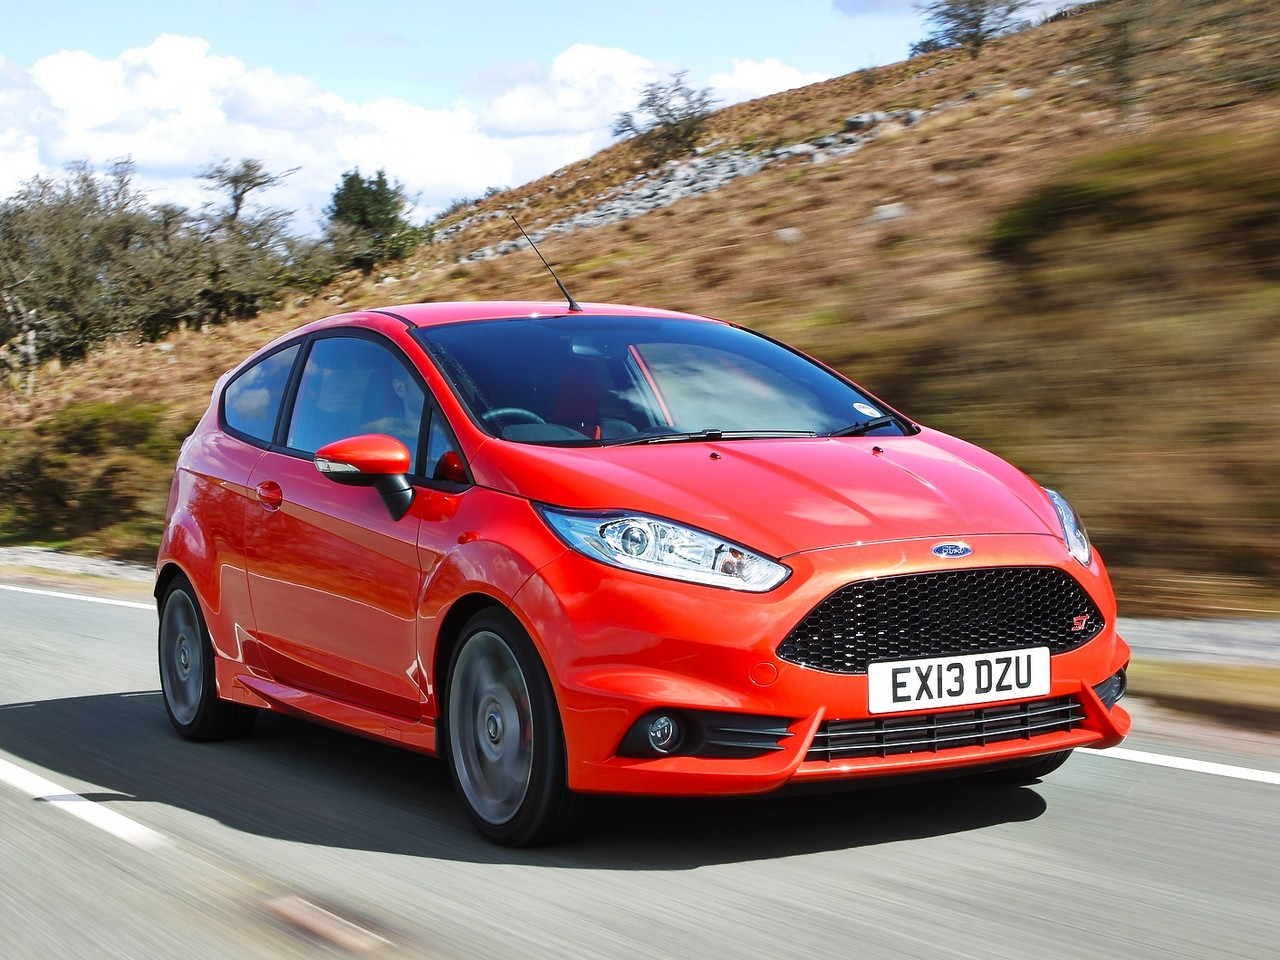 ford fiesta st specs 2012 2013 2014 2015 2016 2017 2018 autoevolution. Black Bedroom Furniture Sets. Home Design Ideas